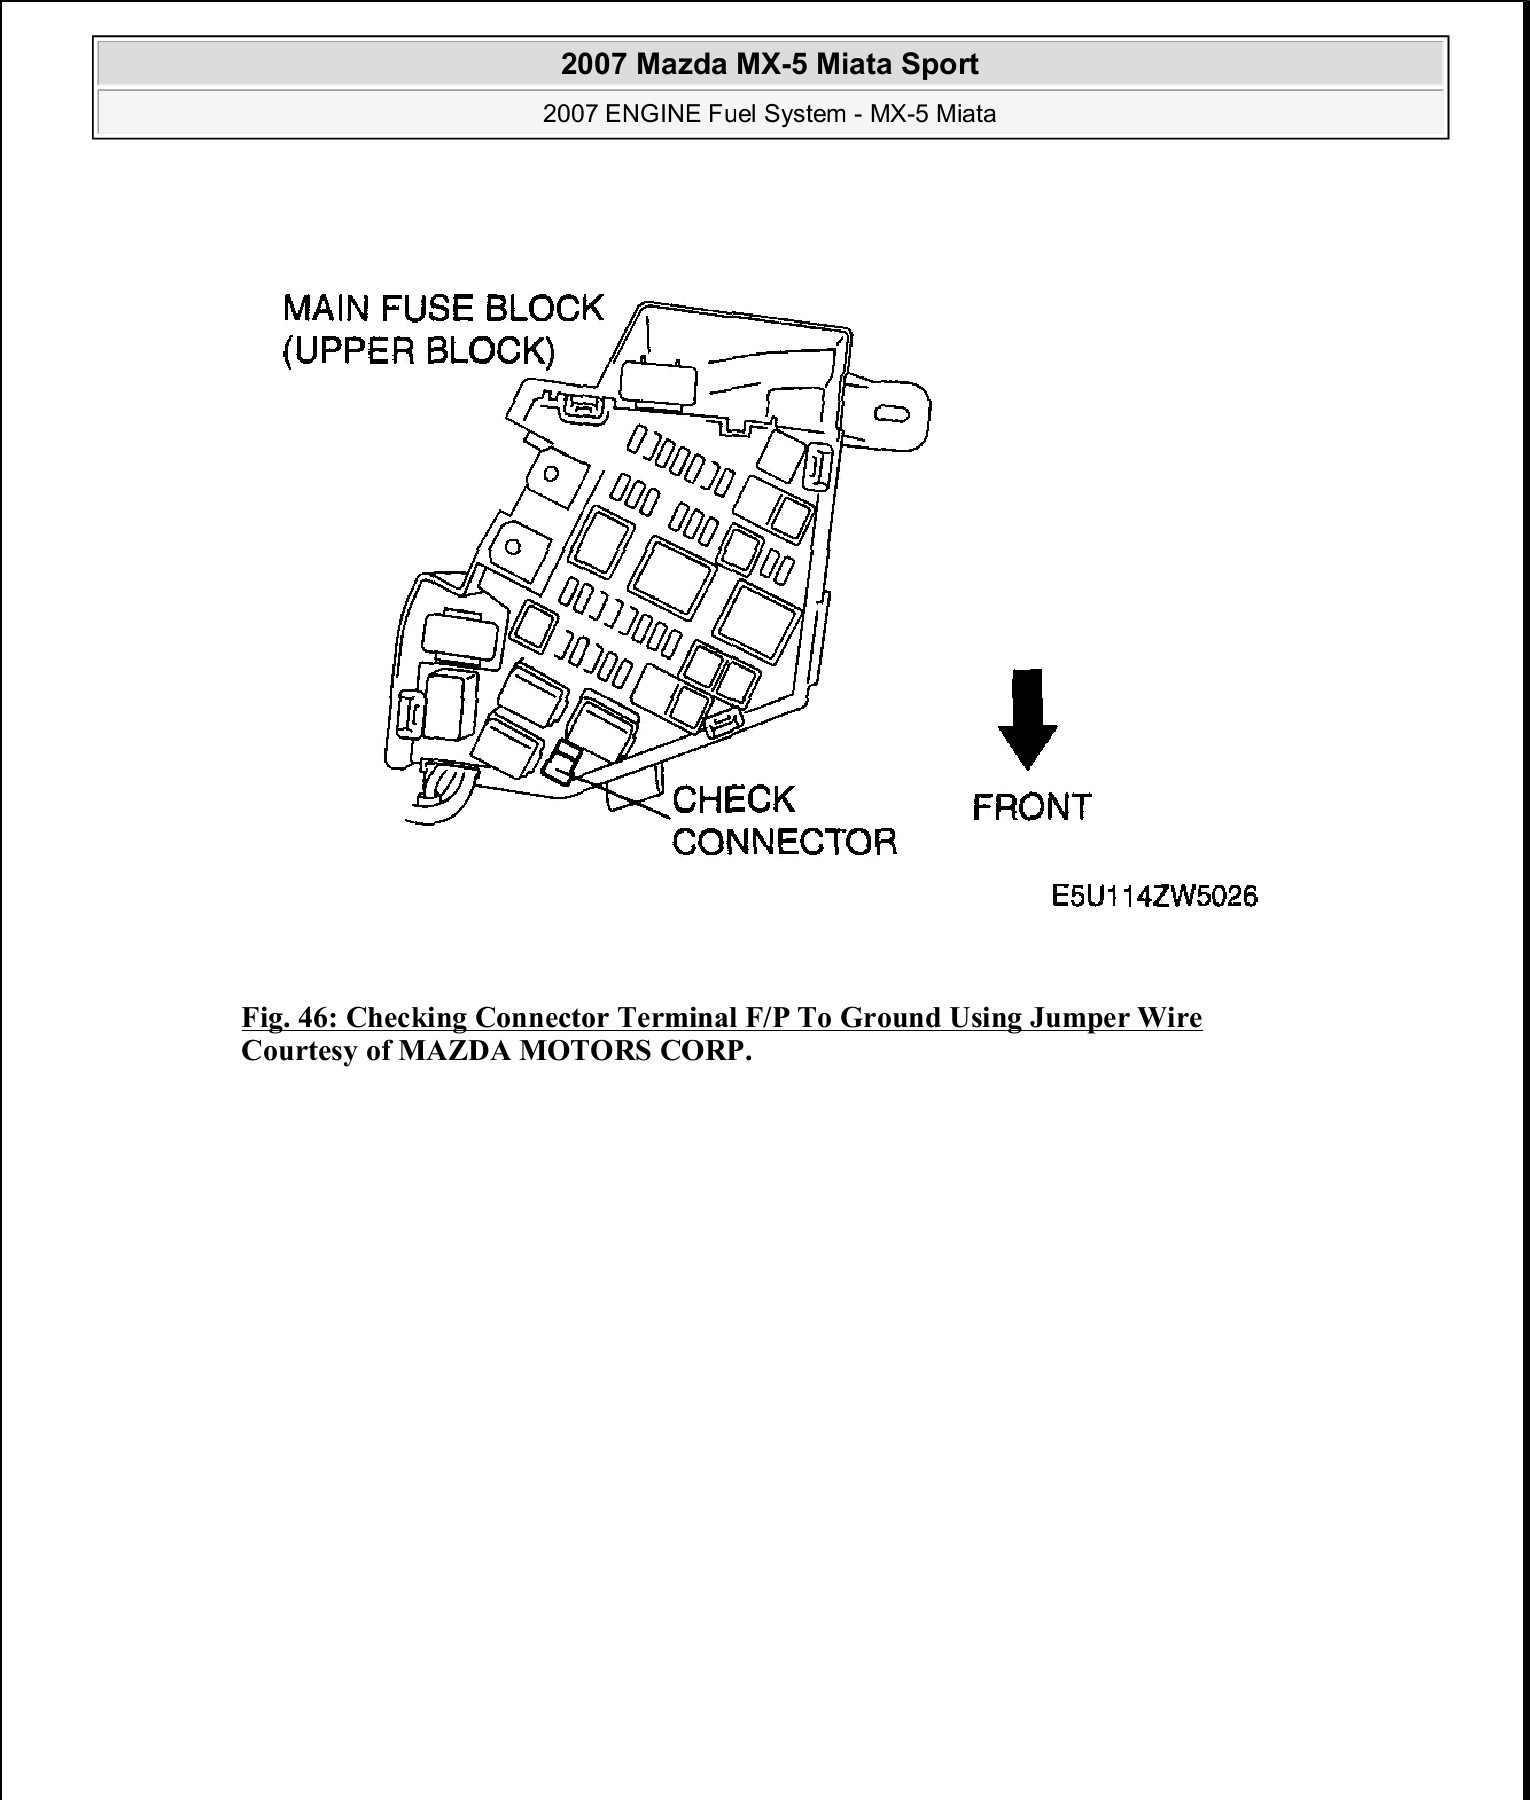 hight resolution of fuel system flow diagram lf mellens net pages 51 58 text version fliphtml5